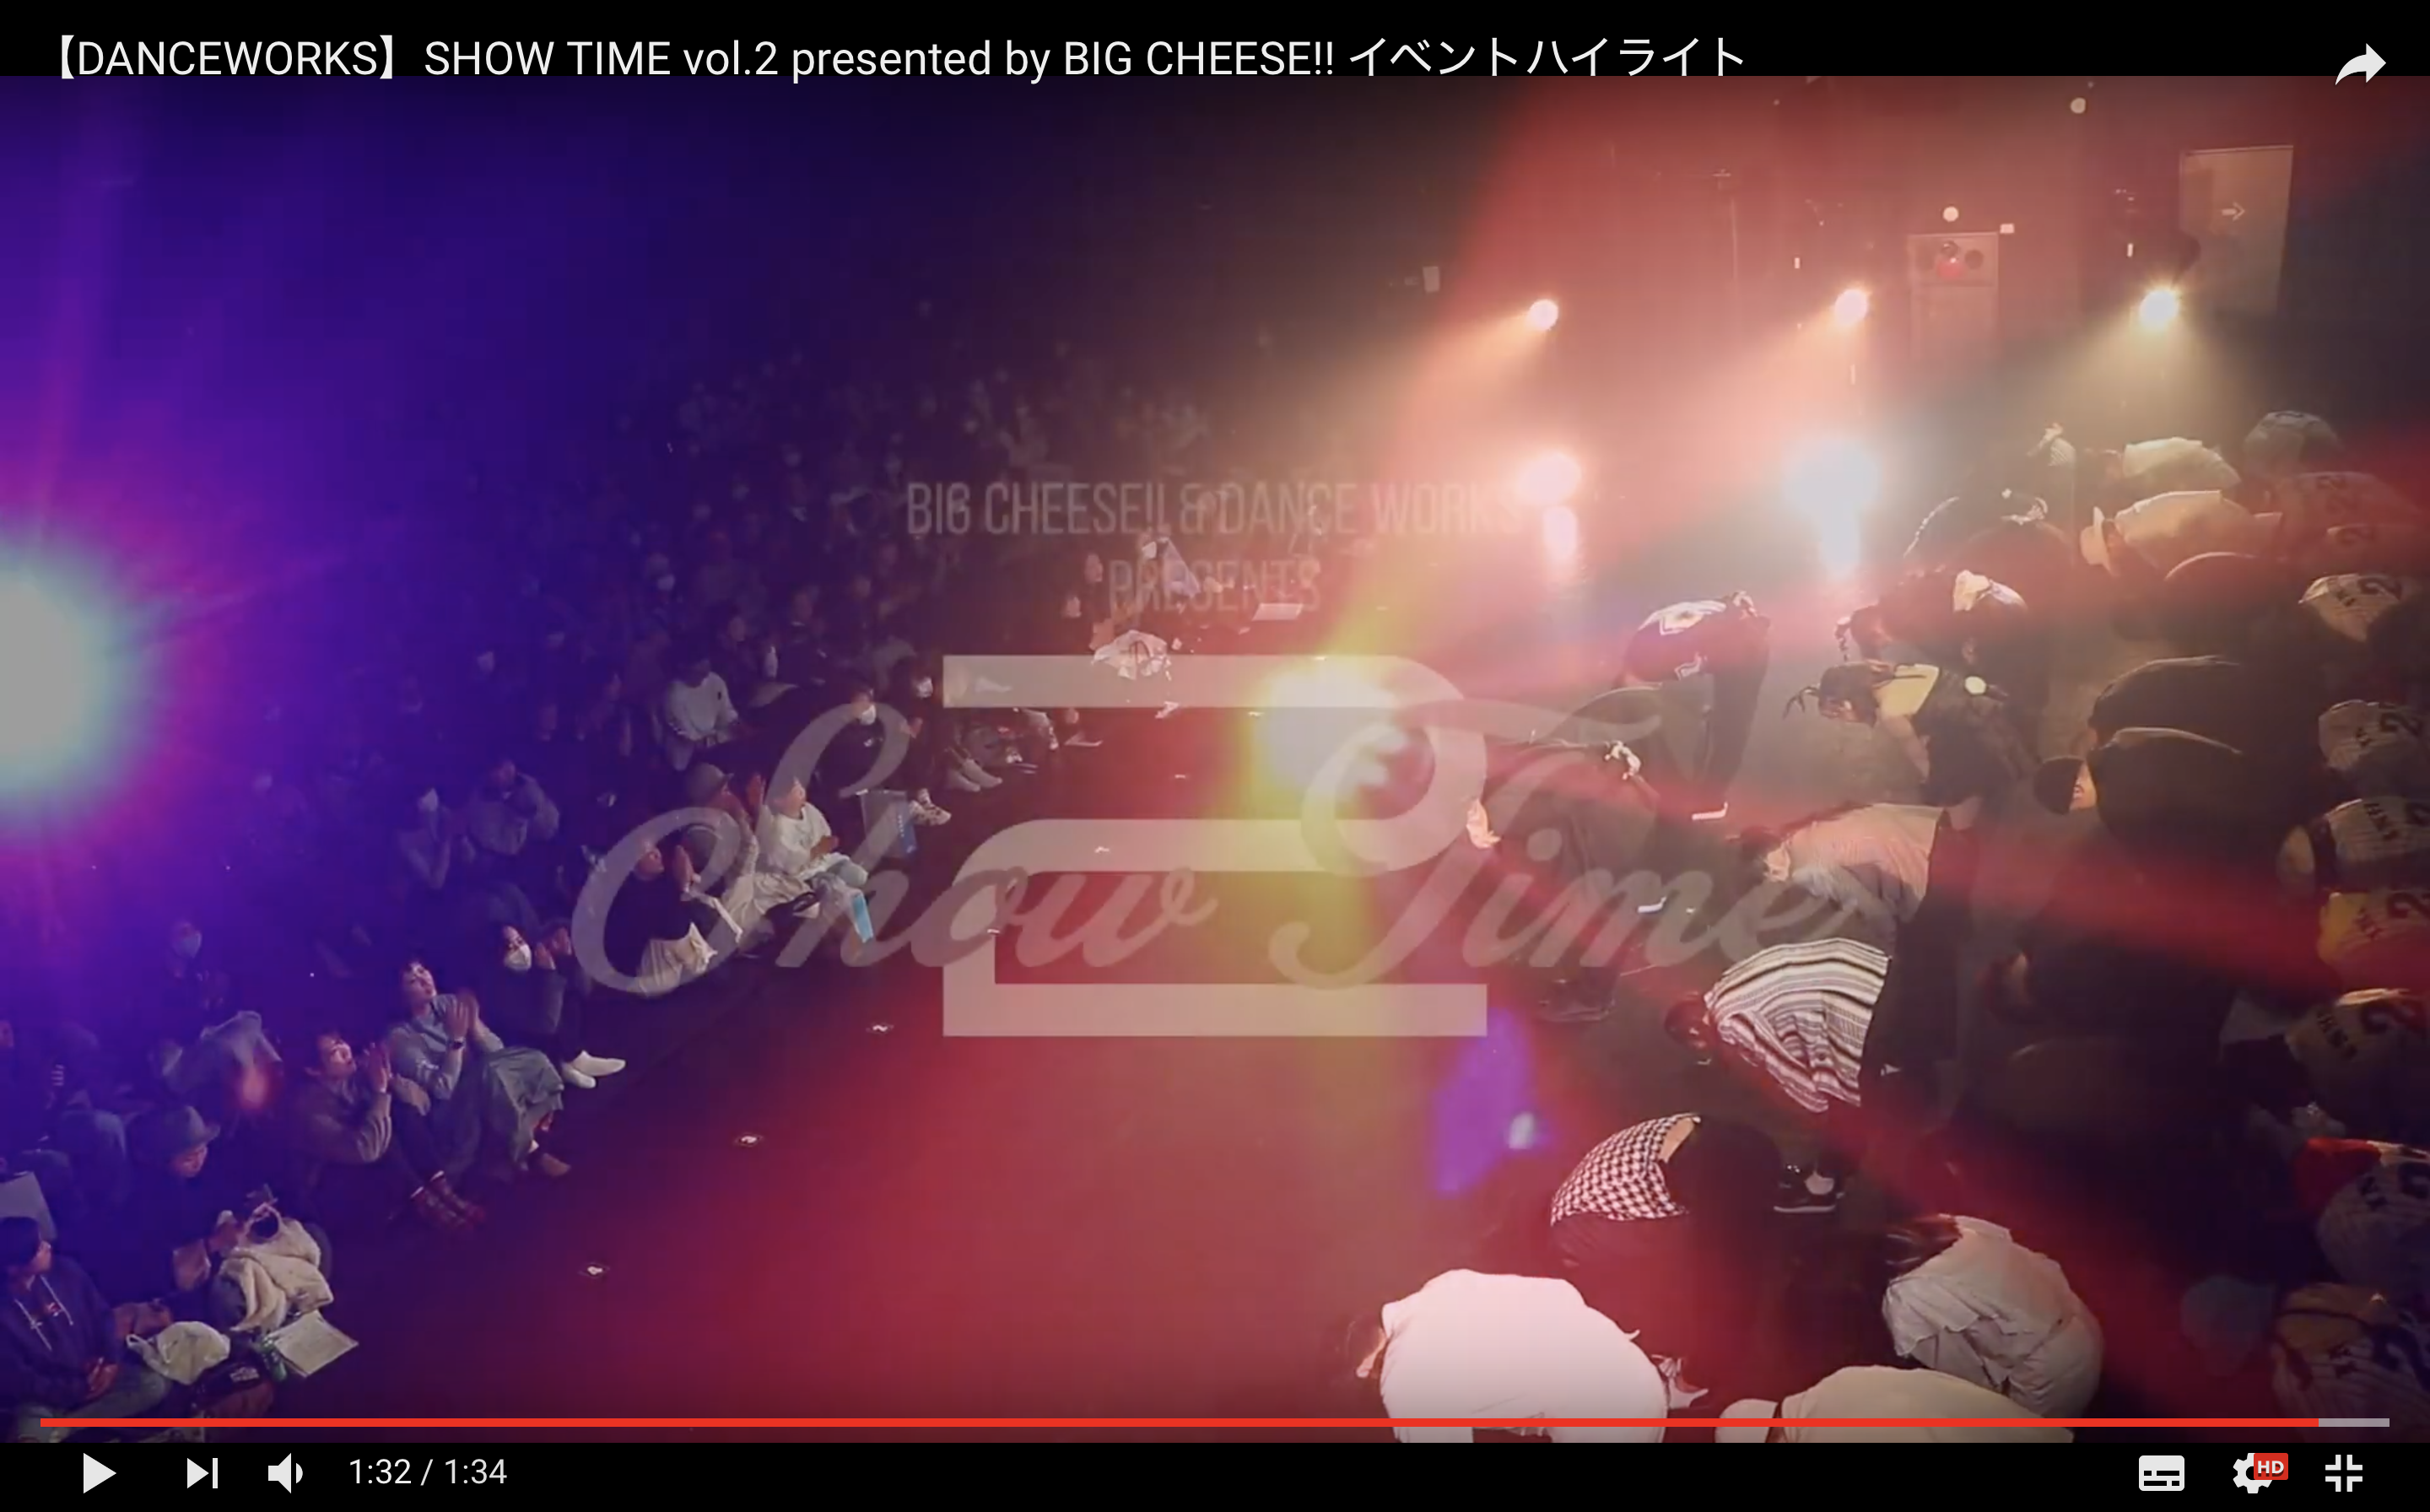 【DANCE WORKS×BIG CHEESE!!】SHOW TIME vol.2 ハイライト映像公開!